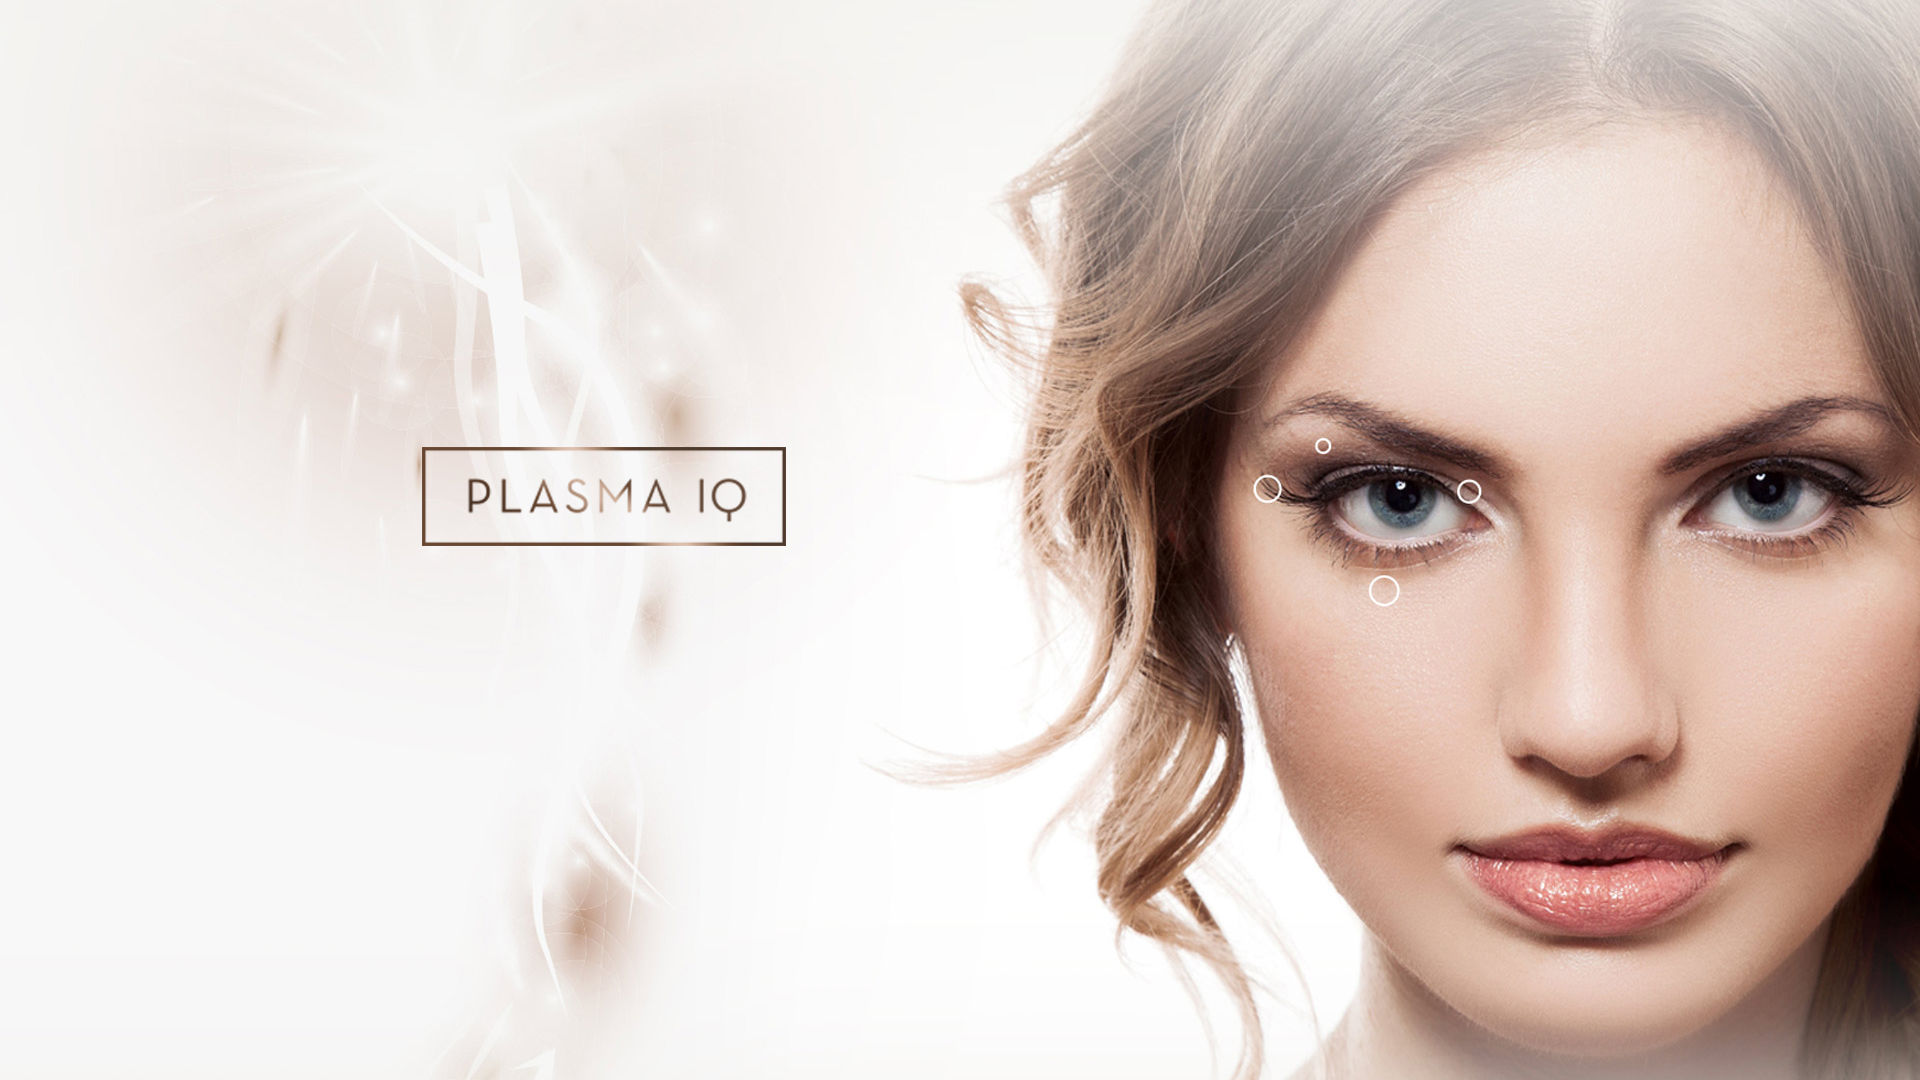 Plasmaiq Beauty Center